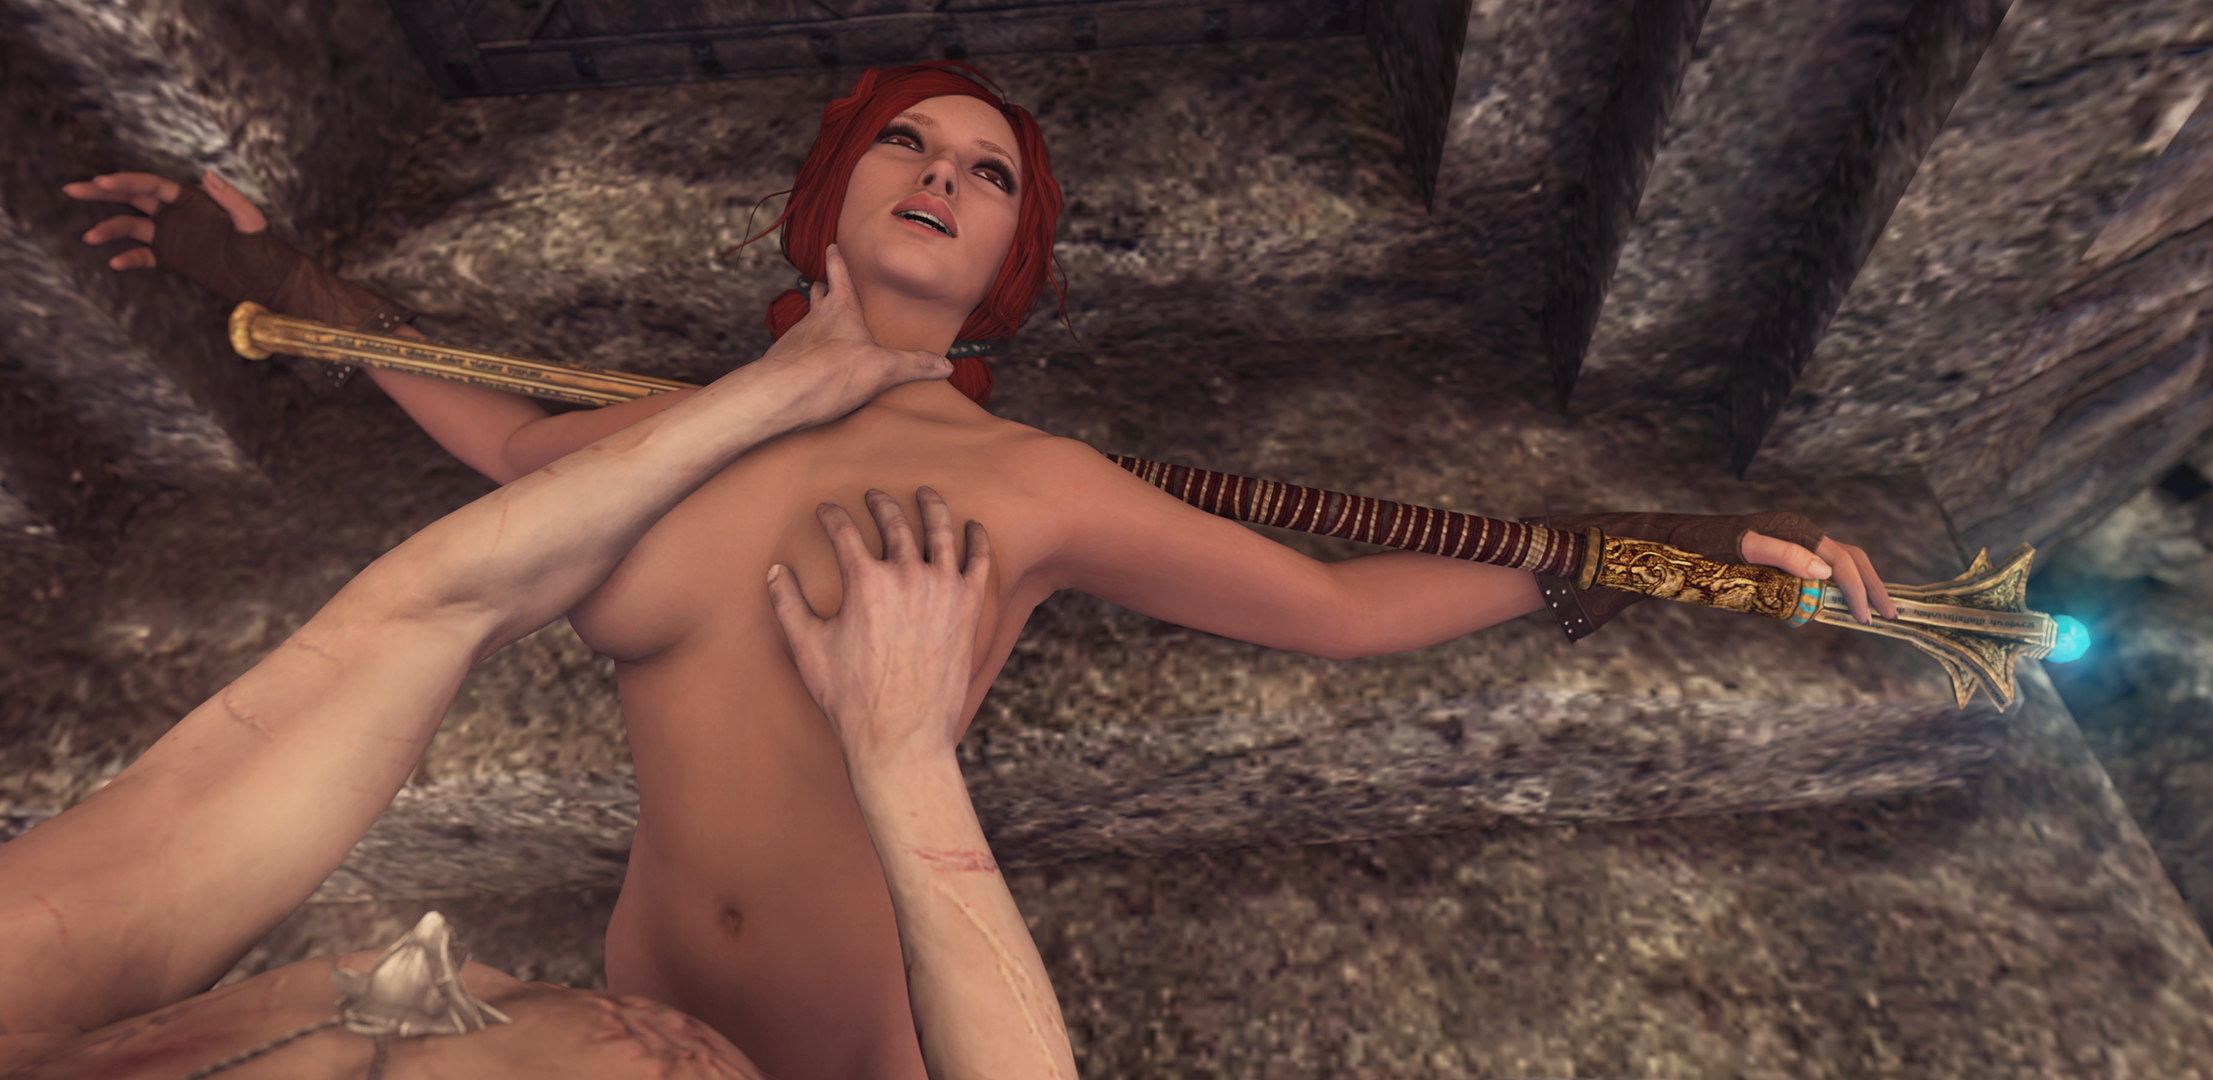 Witcher 2 nude scenes porncraft movie